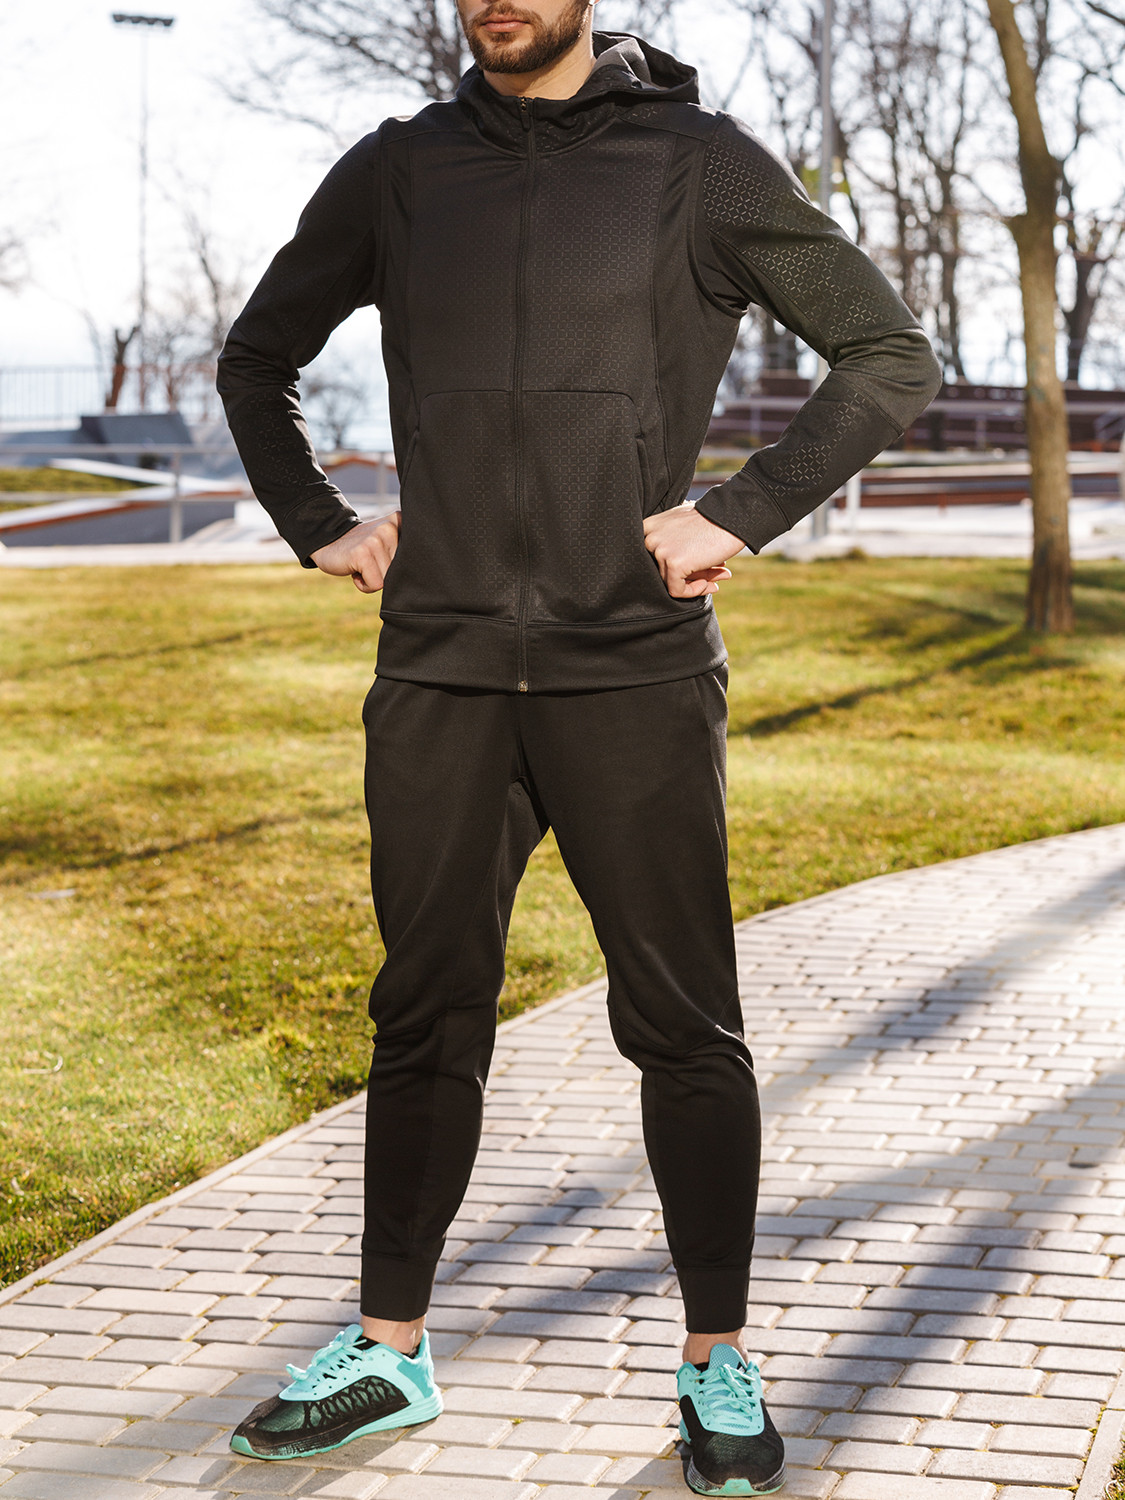 Men's outfit idea for 2021 with black hoodie, black crew neck t-shirt, black sweatpants, blue sneakers. Suitable for spring, fall and winter.